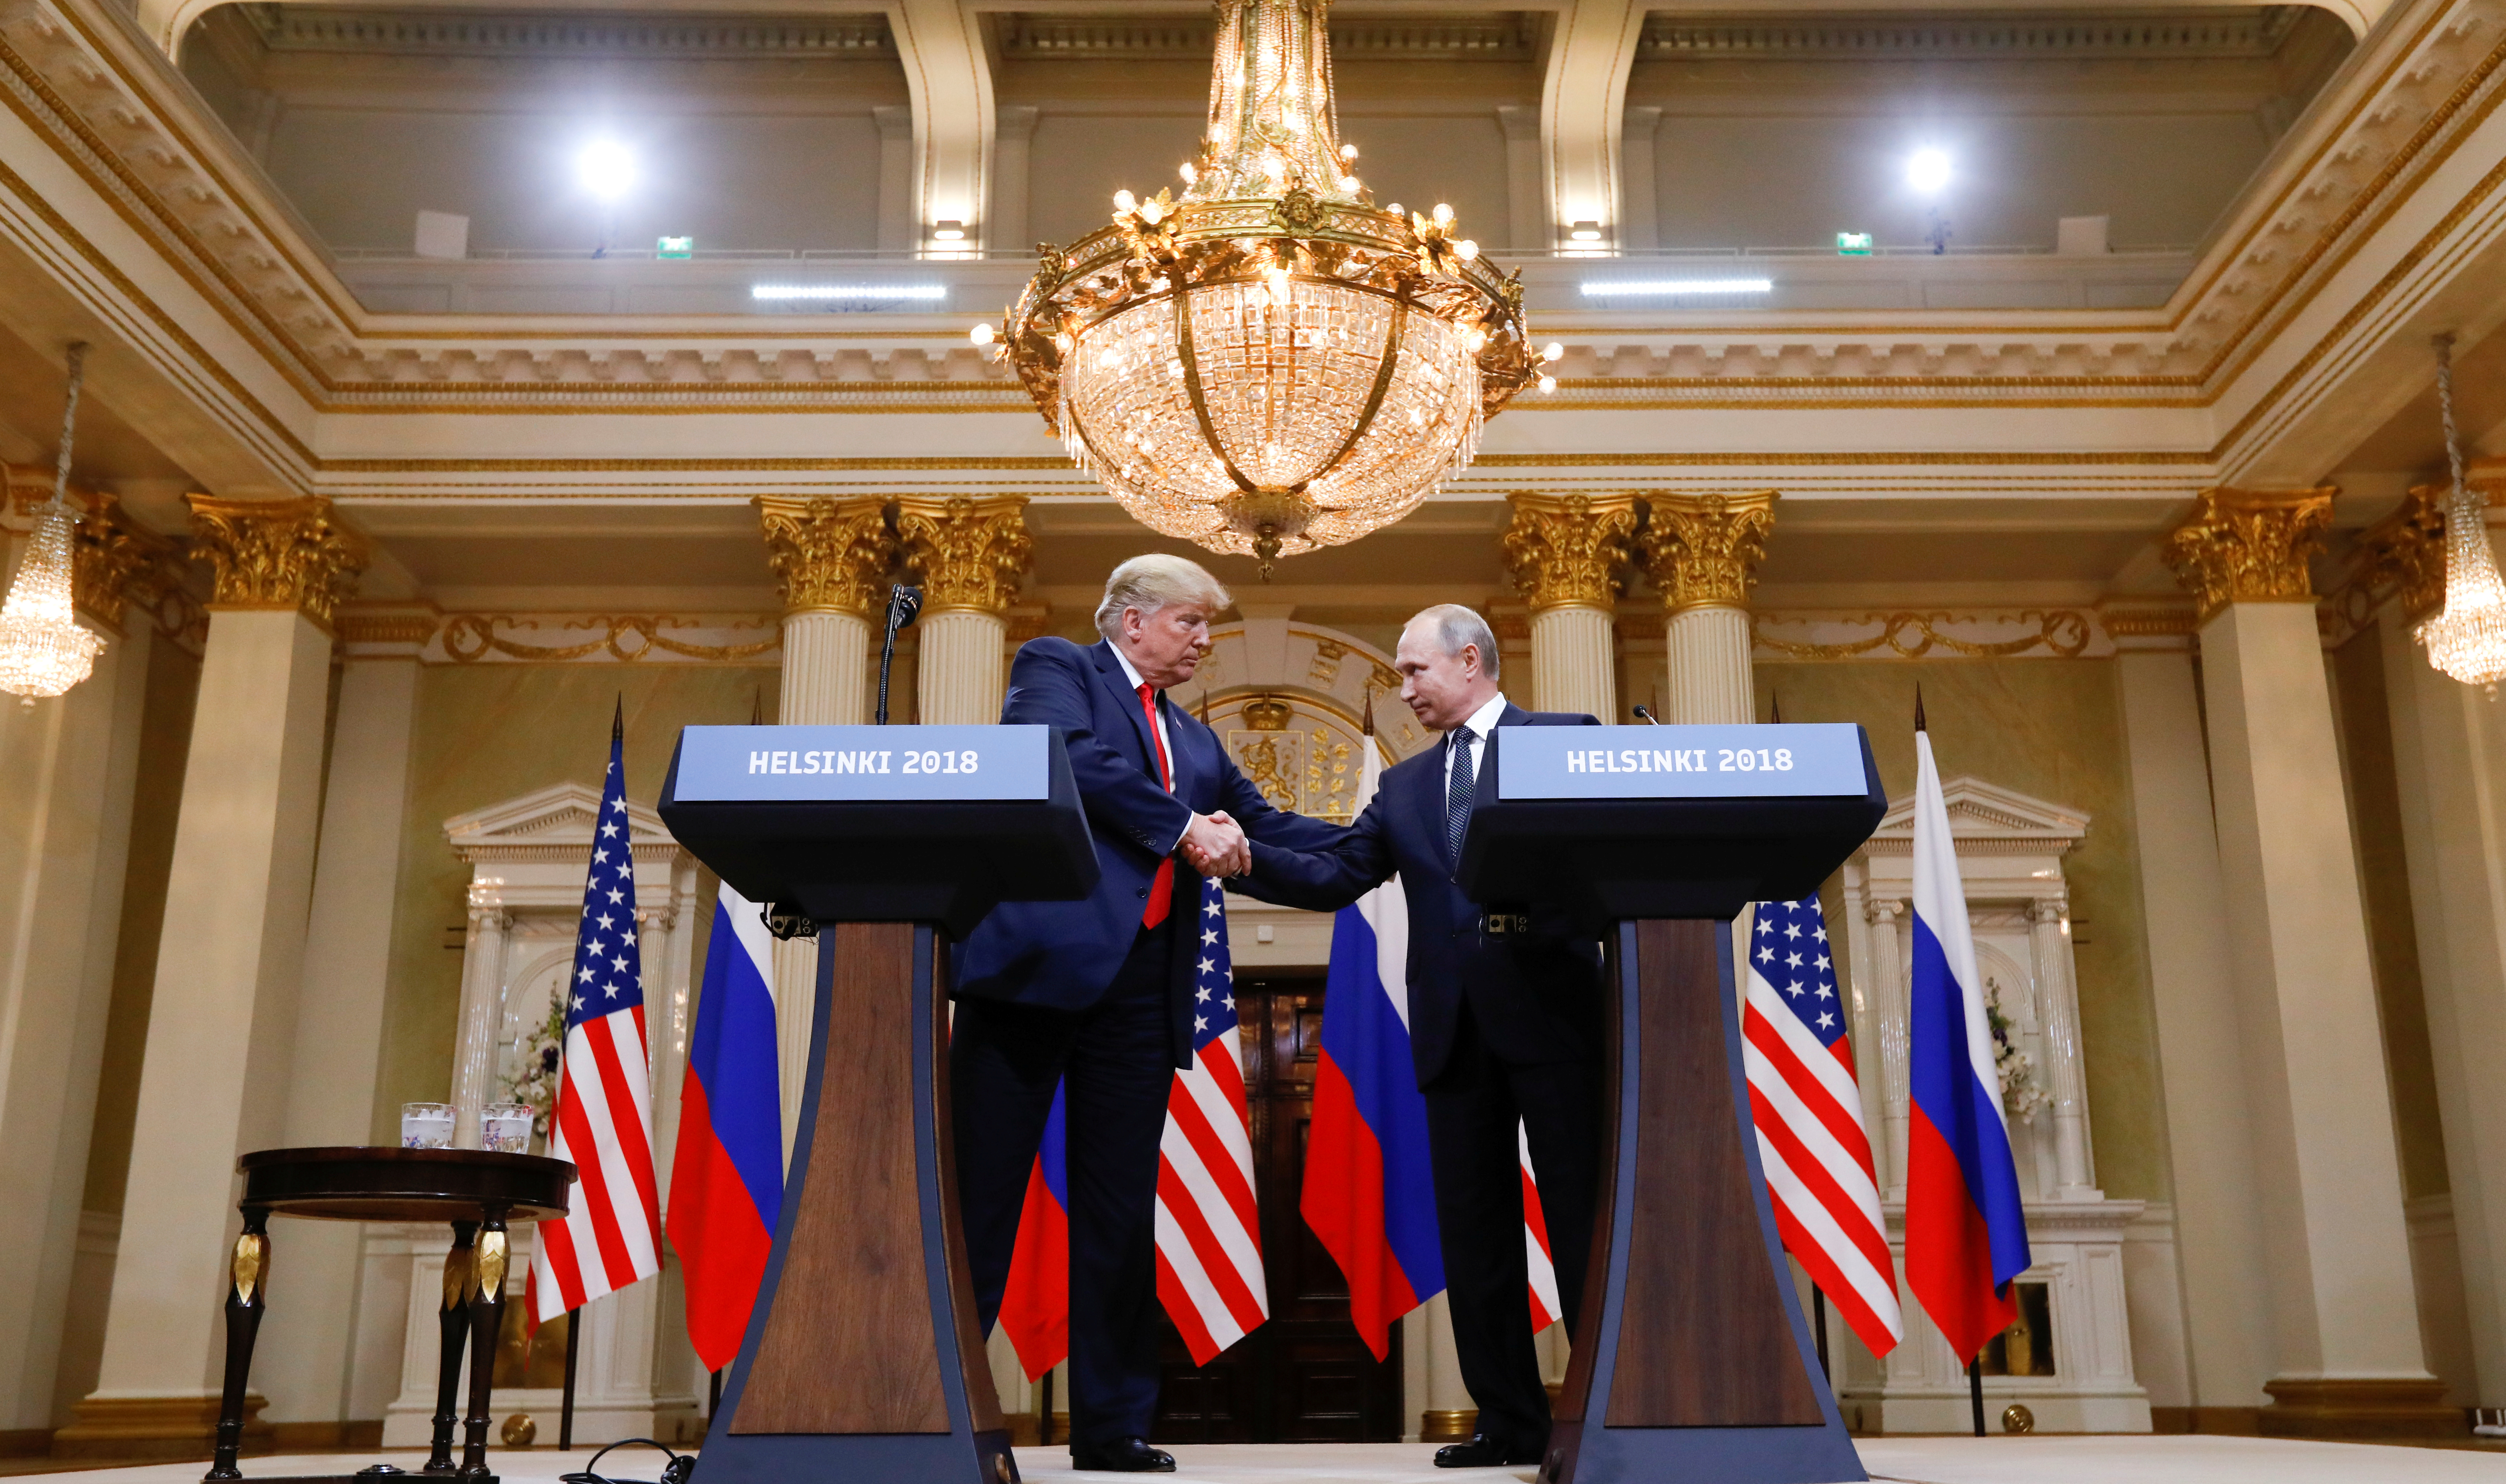 U.S. President Donald Trump and Russia's President Vladimir Putin shake hands during a joint news conference after their meeting in Helsinki, Finland, July 16, 2018. REUTERS/Kevin Lamarque - RC165B49D900